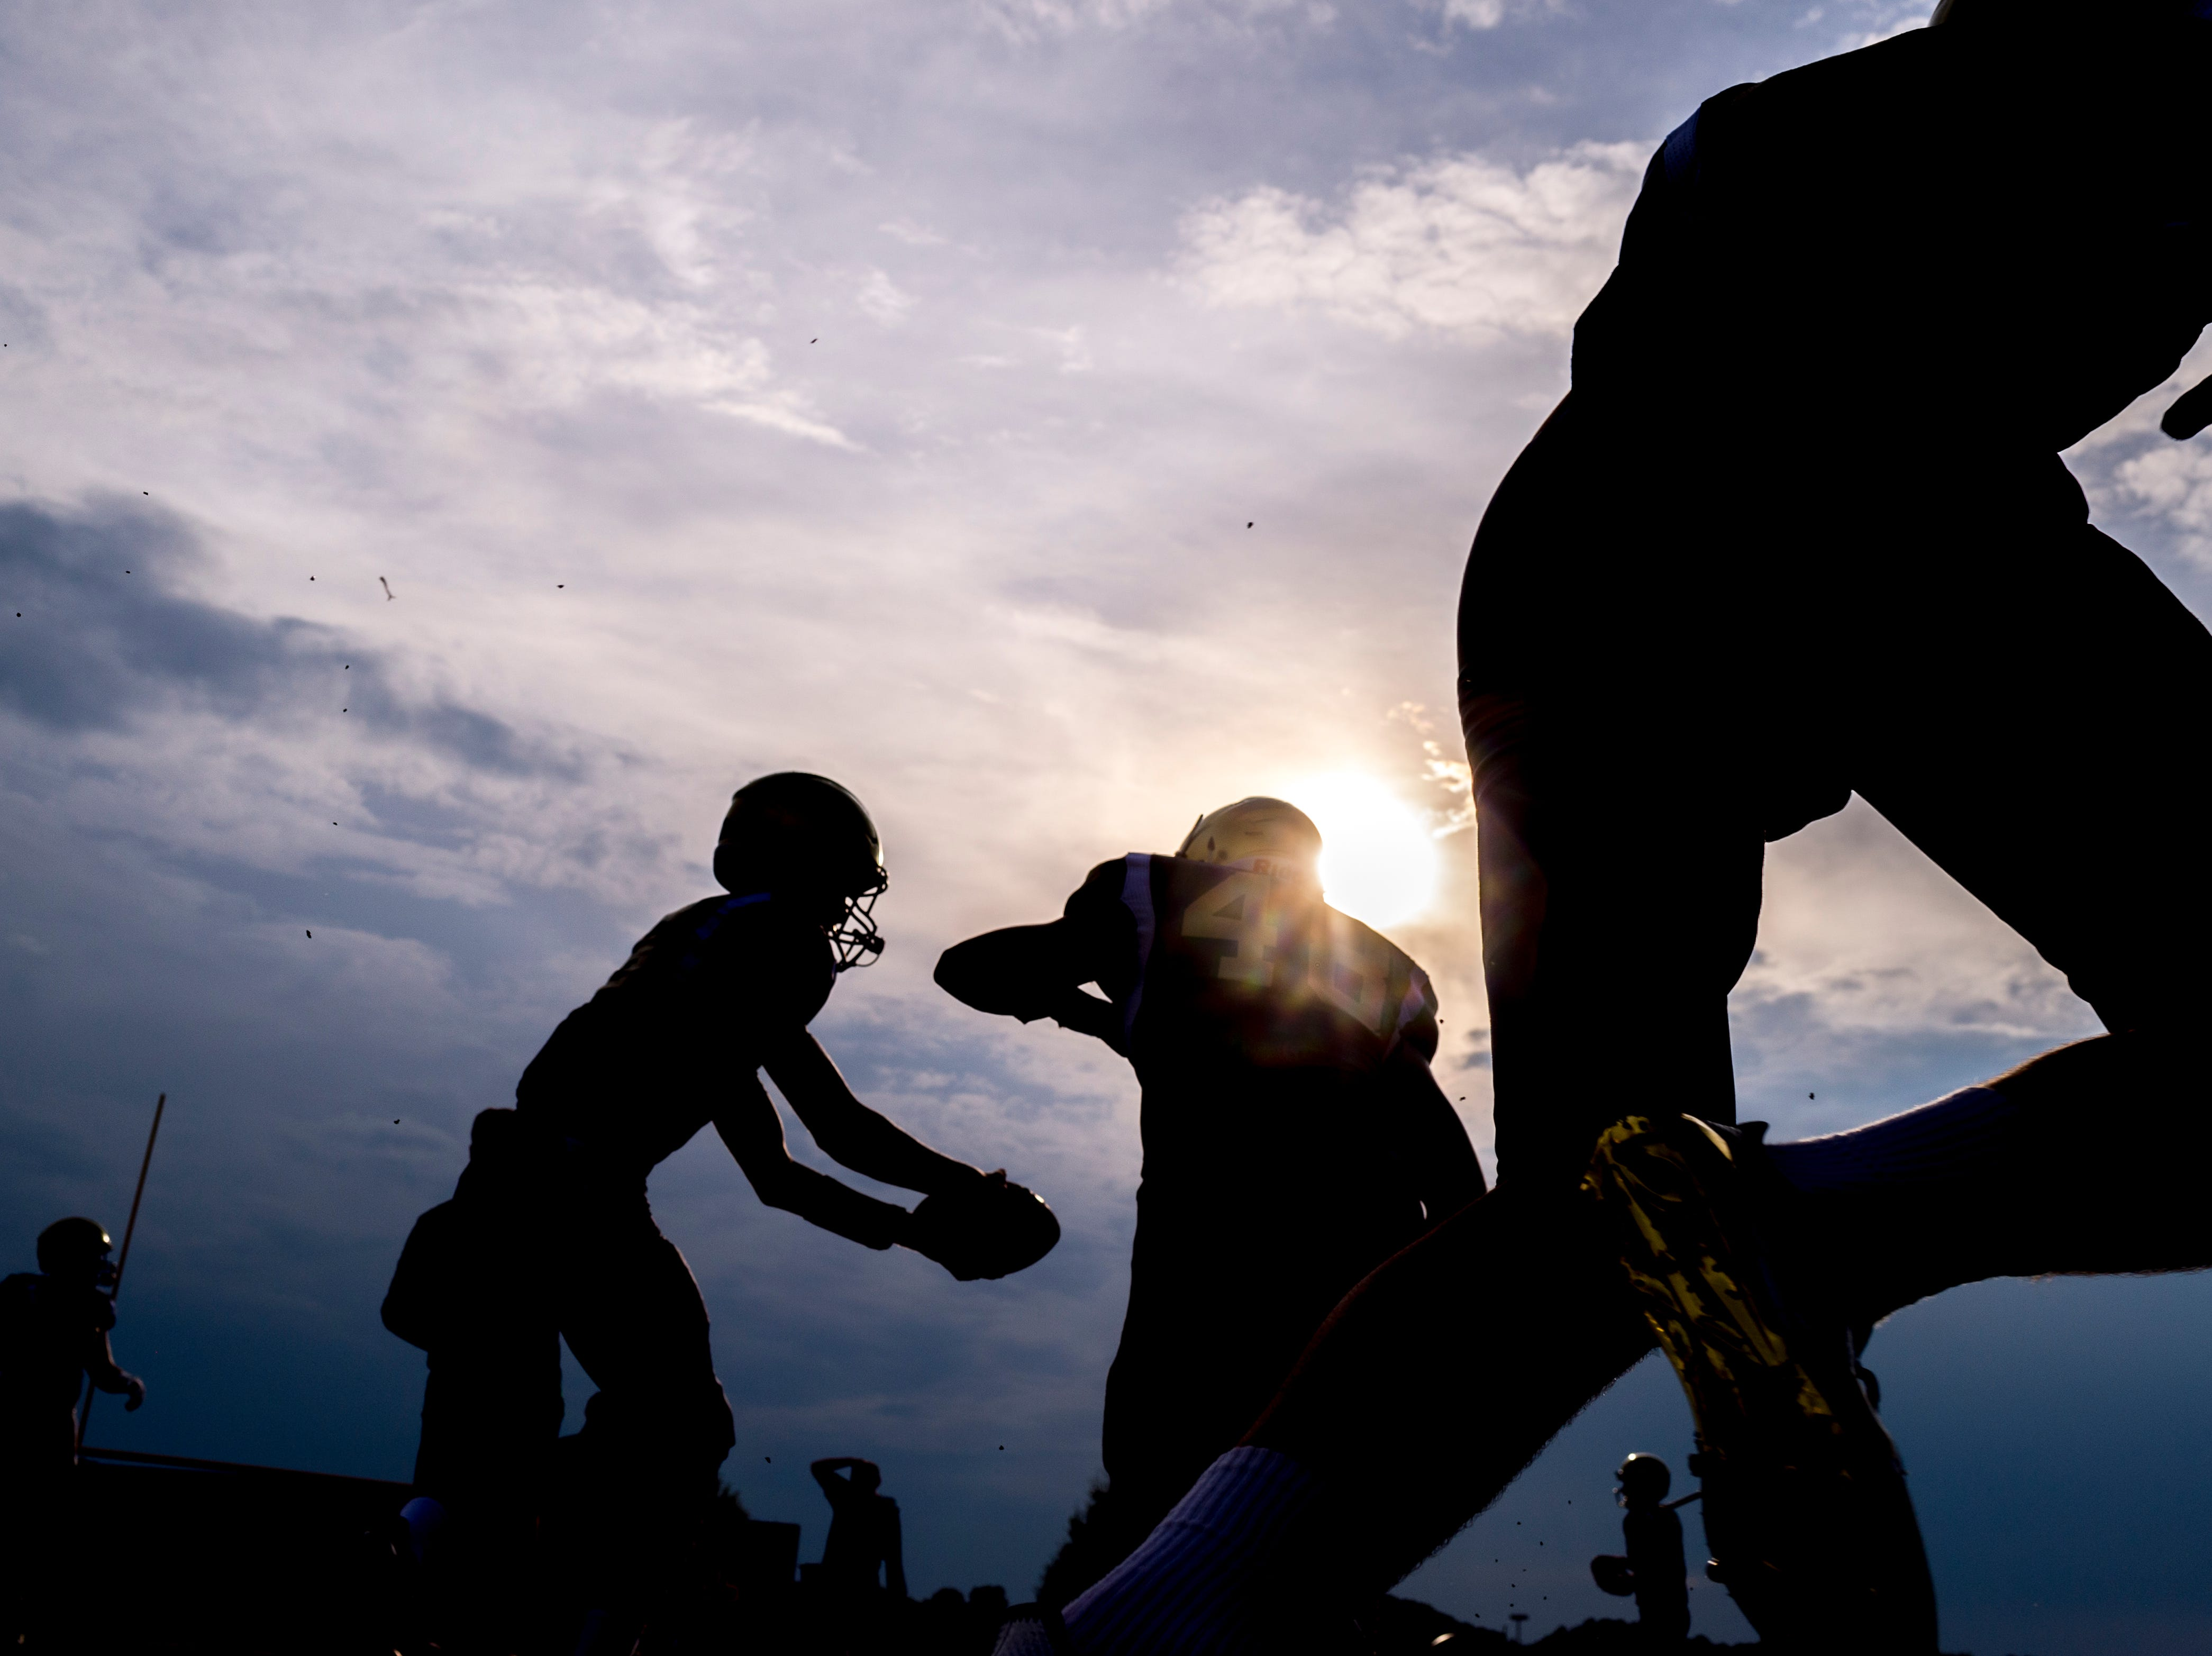 Catholic players drill during a football game between Maryville and Catholic at Catholic High School in Knoxville, Tennessee on Friday, August 17, 2018.